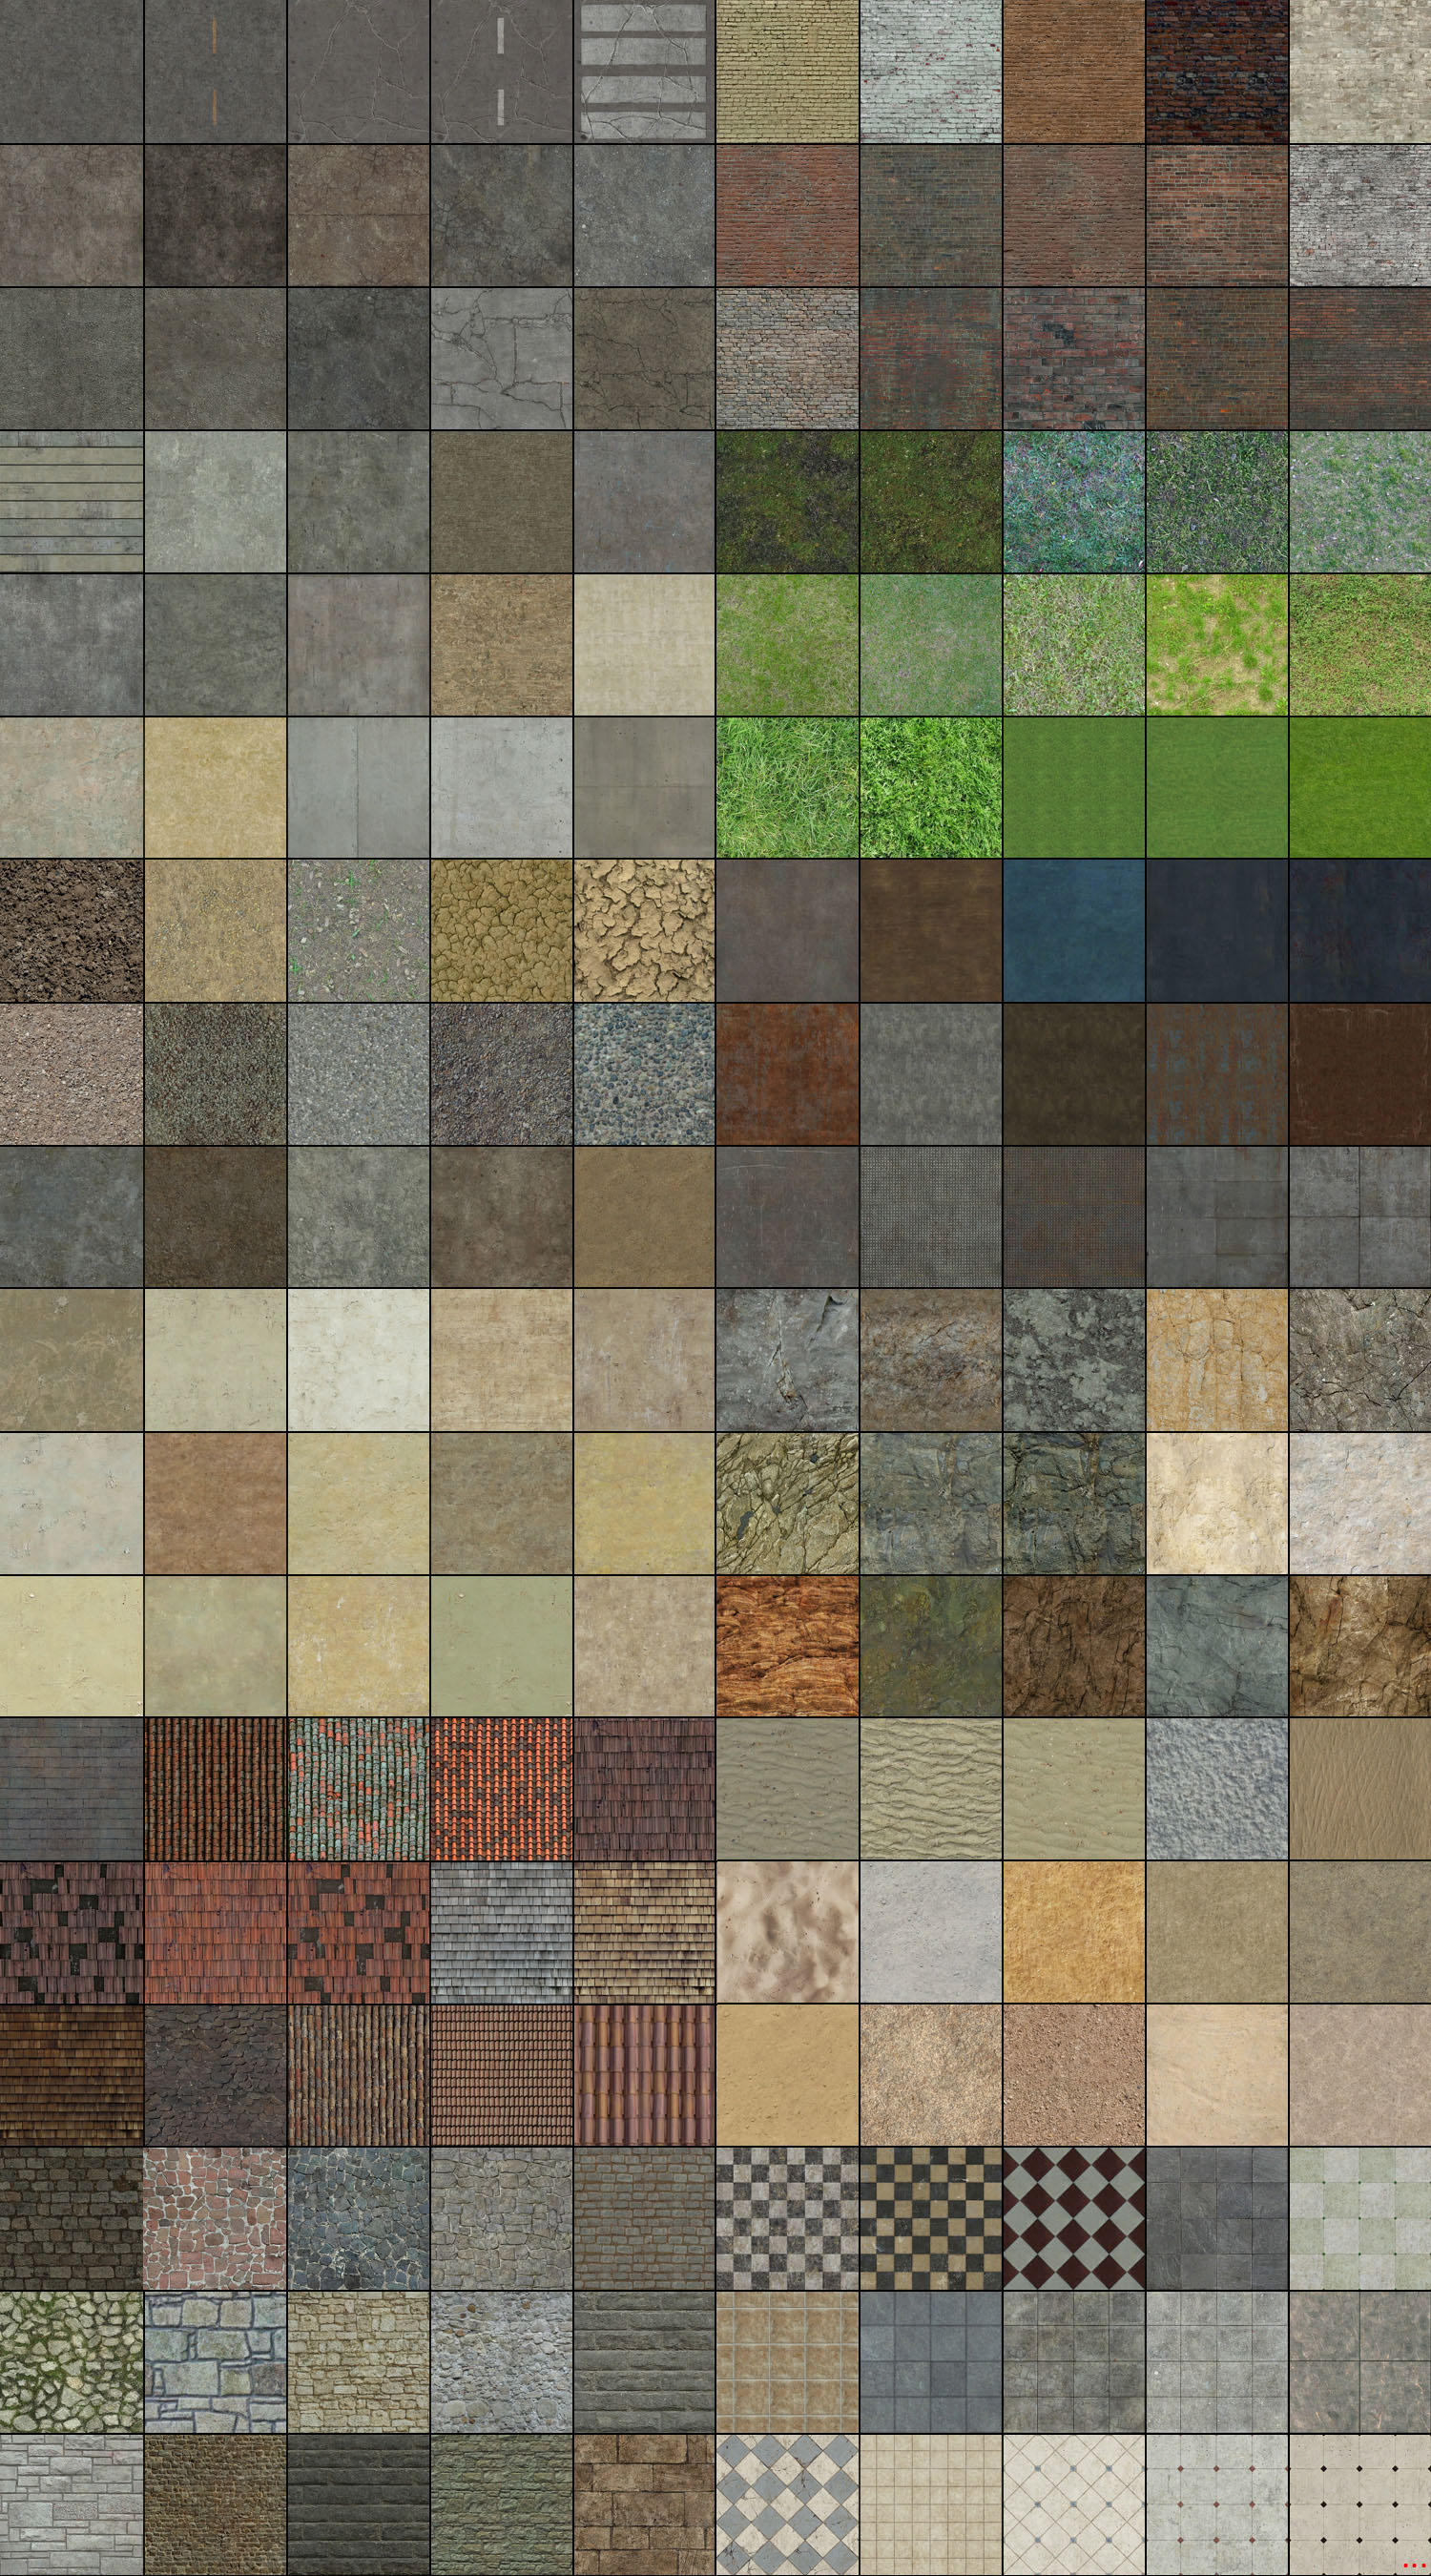 Complete Texture Pack By Akinuri On Deviantart